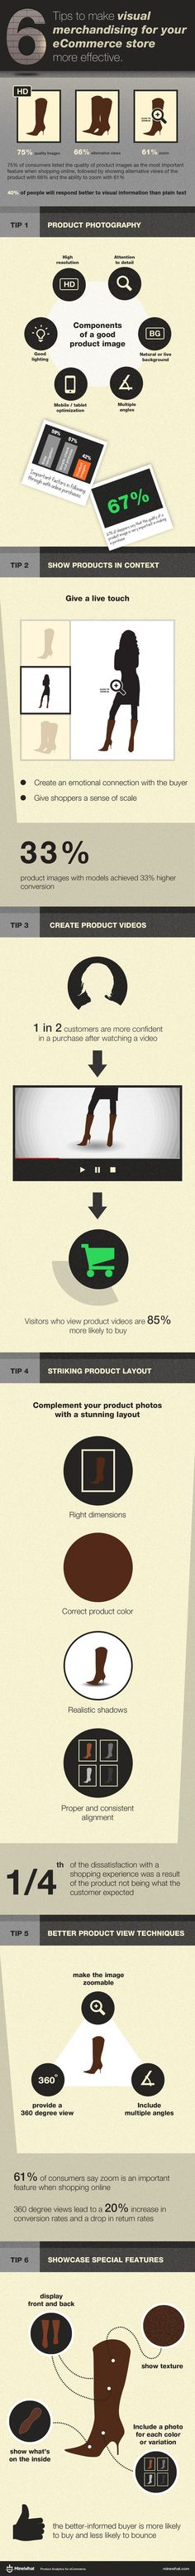 eCommerce: Visual Merchandising Tips [Infographic] Rainbow Website, Merchandising Tips, Website Optimization, Technical Writing, Do It Yourself Fashion, Shops, Information Graphics, Book Authors, Digital Marketing